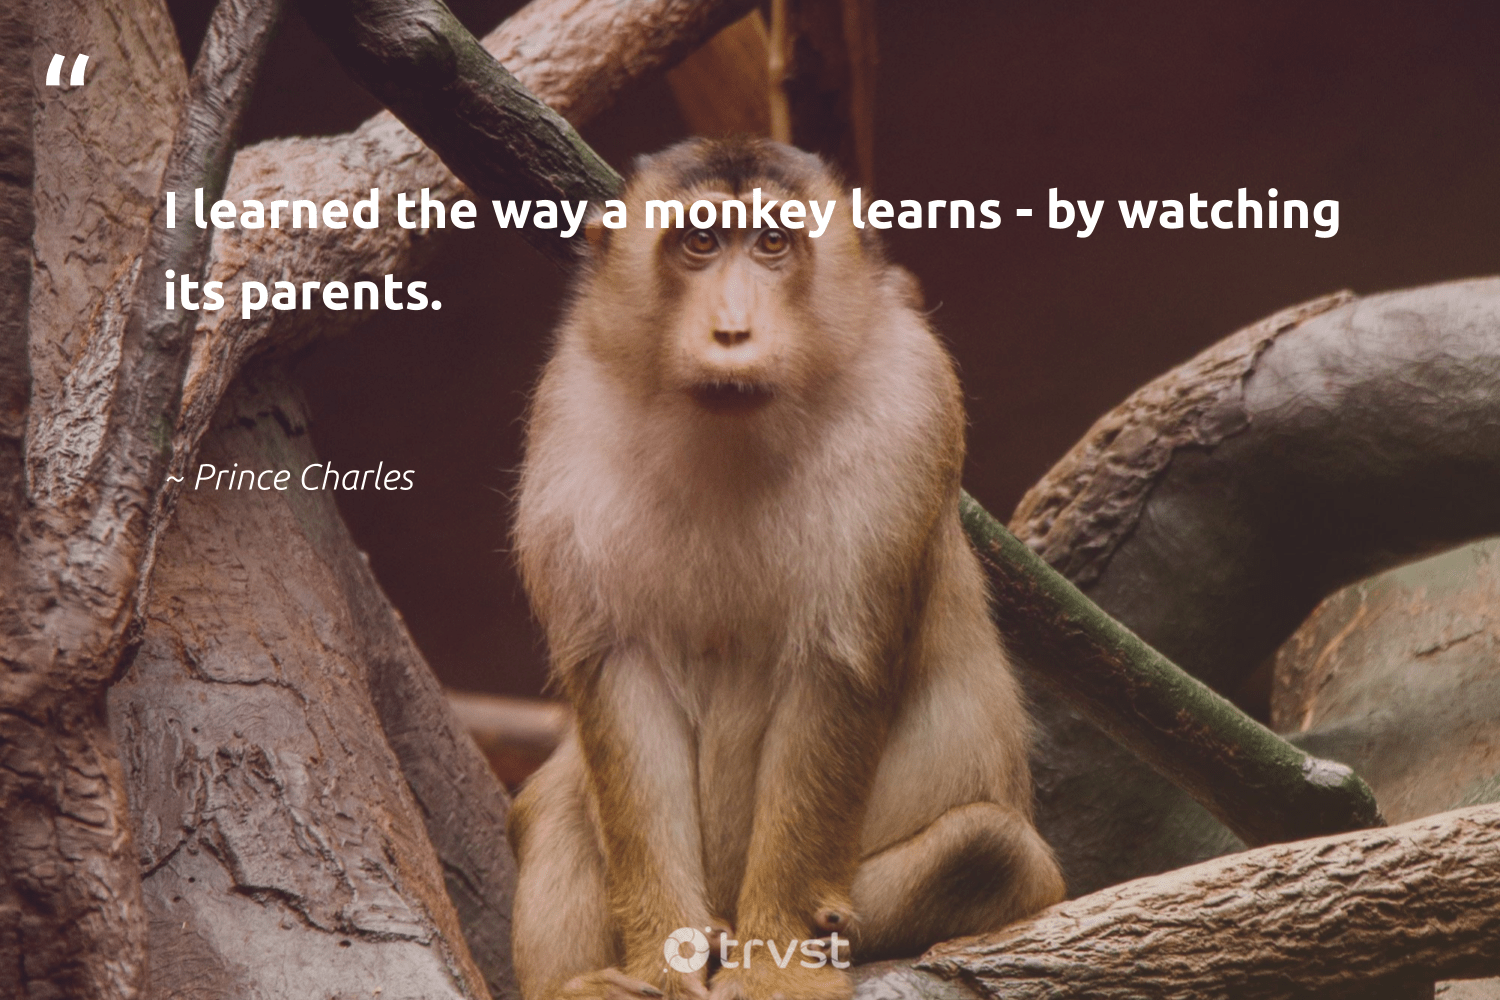 """I learned the way a monkey learns - by watching its parents.""  - Prince Charles #trvst #quotes #monkey #sustainability #dotherightthing #majesticwildlife #socialchange #monkeys #changetheworld #splendidanimals #beinspired #conservation"